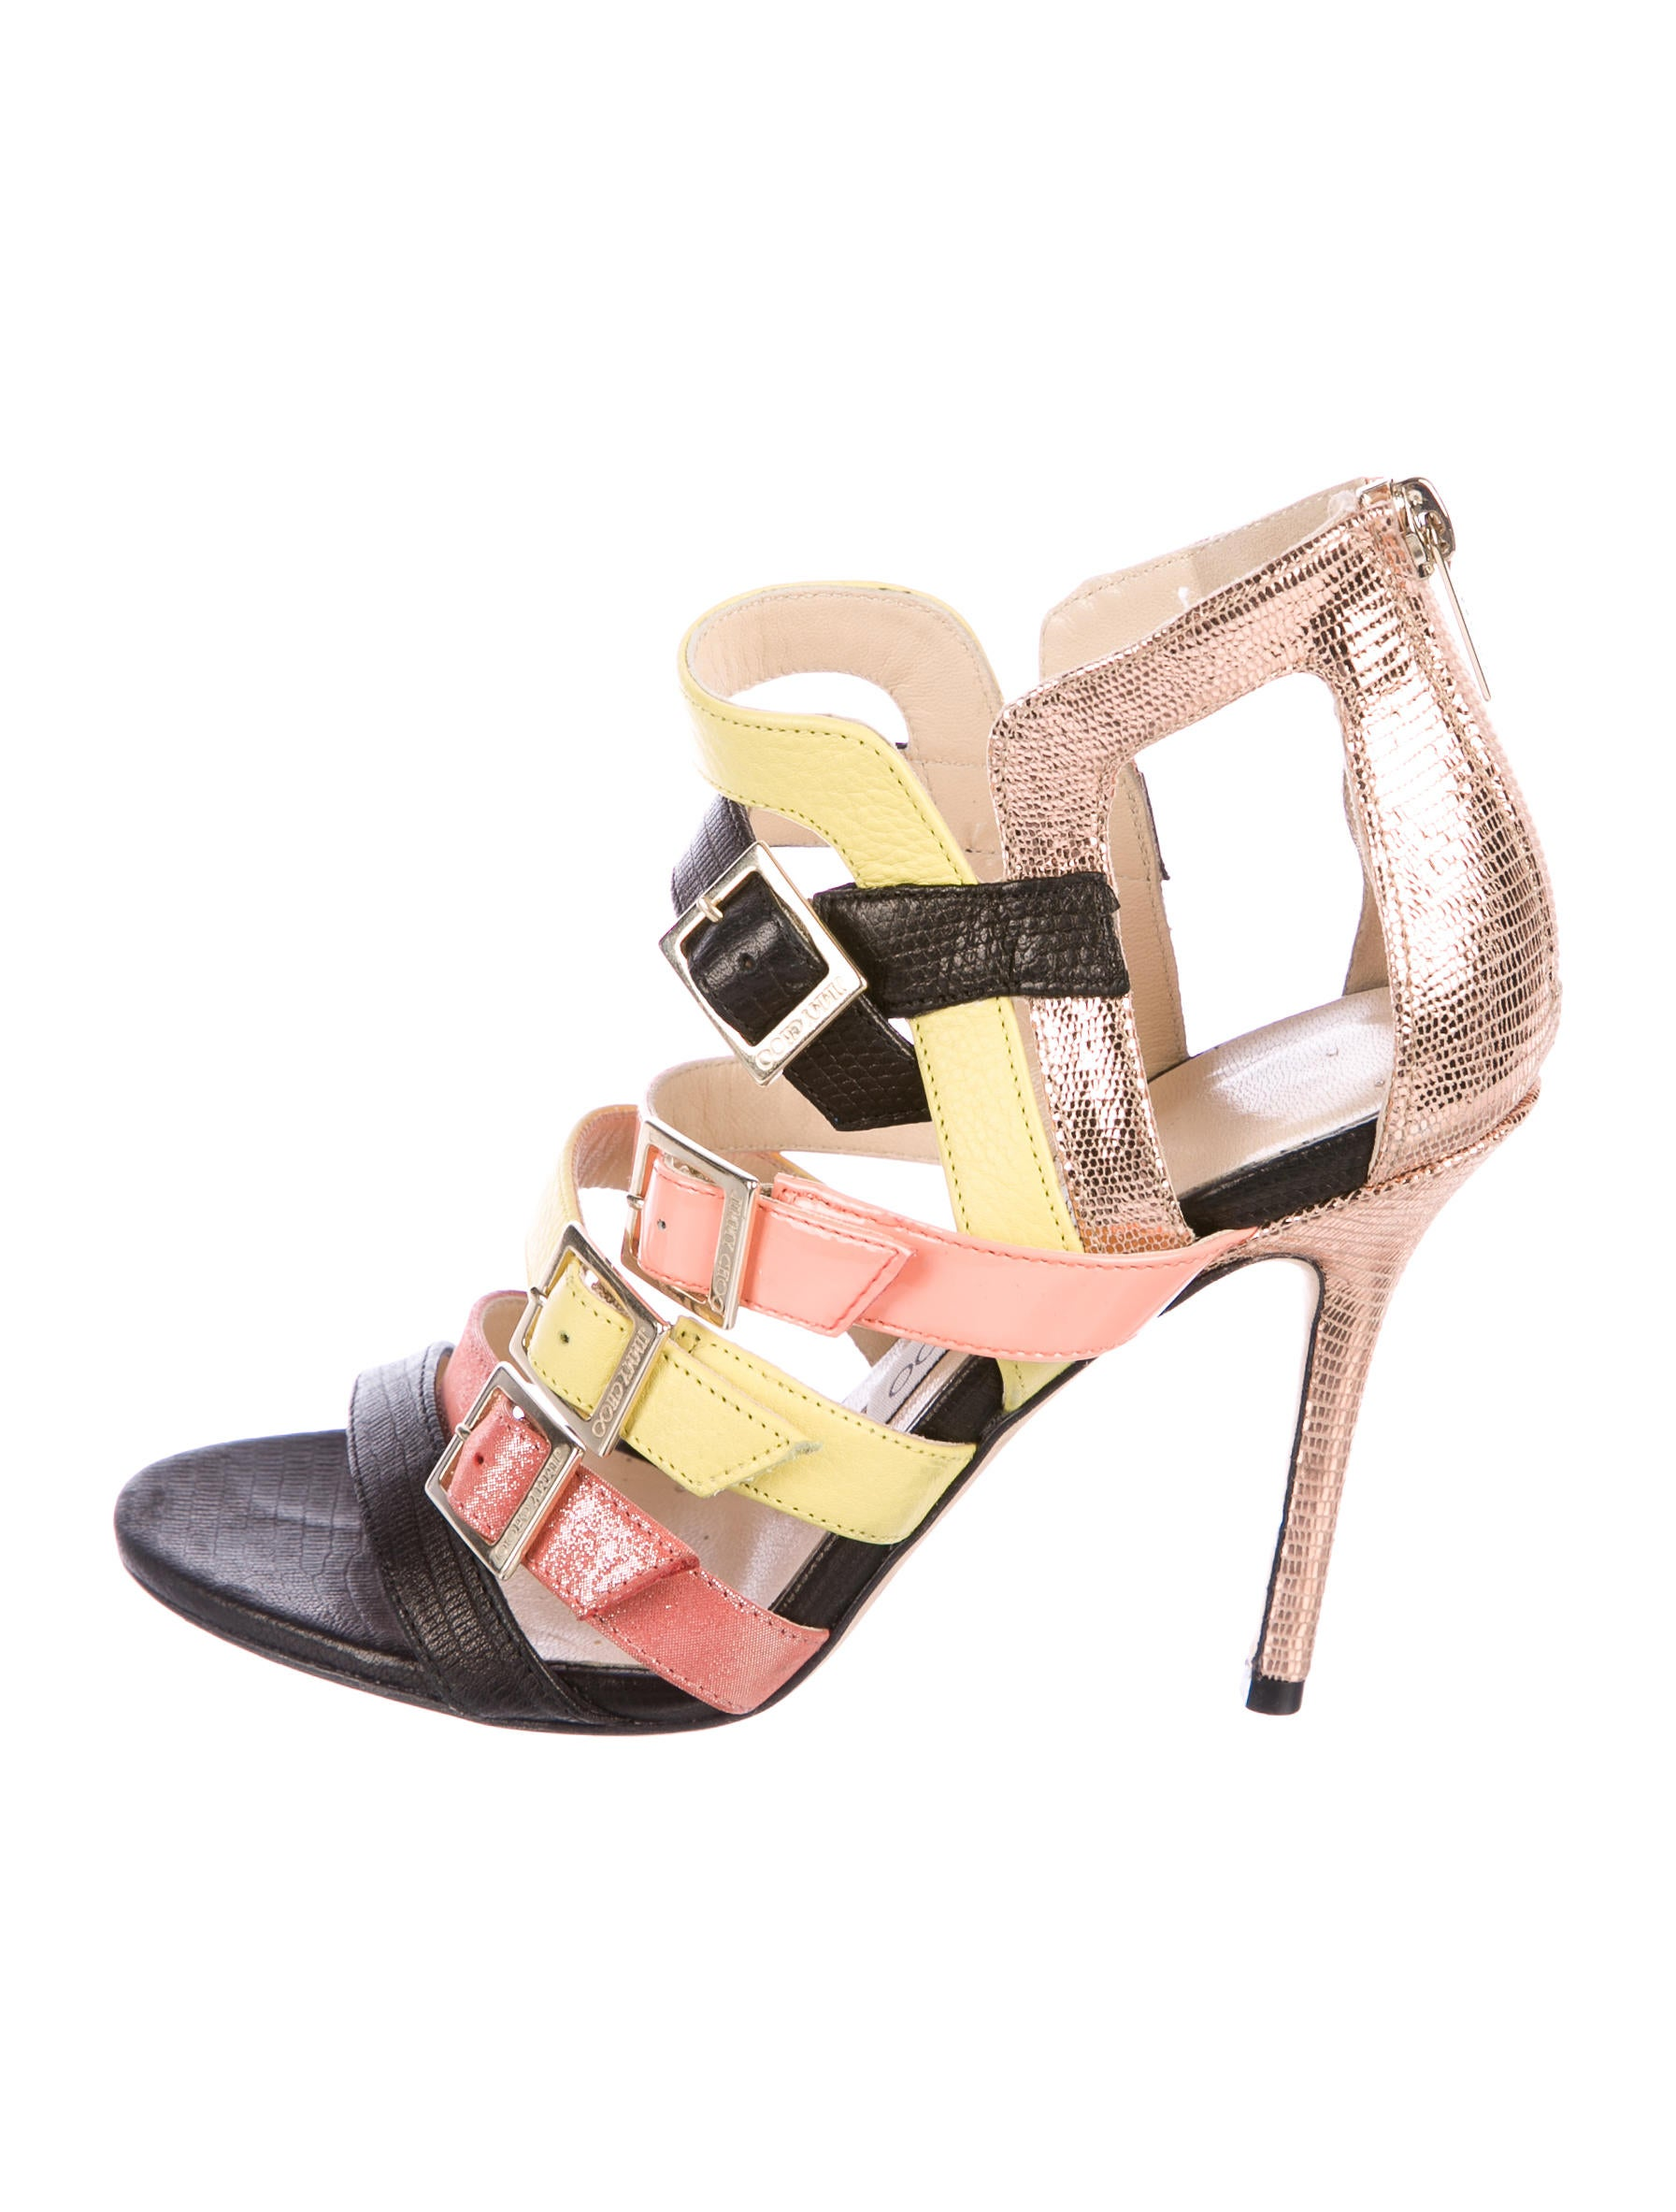 clearance latest cheap store Jimmy Choo Buckled Caged Sandals buy cheap extremely buy cheap hot sale cheap price discount authentic BtVaiH